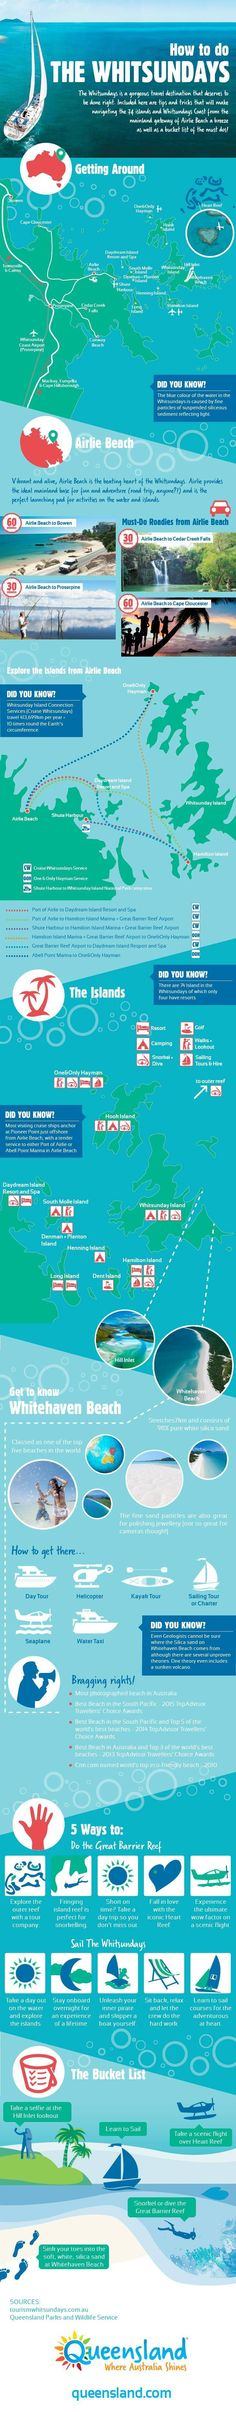 Welcome to Wonderland: The Whitsundays [INFOGRAPHIC] - If you've swooned over the photos of white silica sand swirling through crystal blue water, yachts sailing into sunsets past a heart shaped reef or Instagram shots of a celebrity's sojourn at the luxurious Qualia Resort, you're probably already weak at the knees for The Whitsundays. So what are you waiting for? If you've ever wanted to walk on the white sands of Whitehaven this travel info is for you!